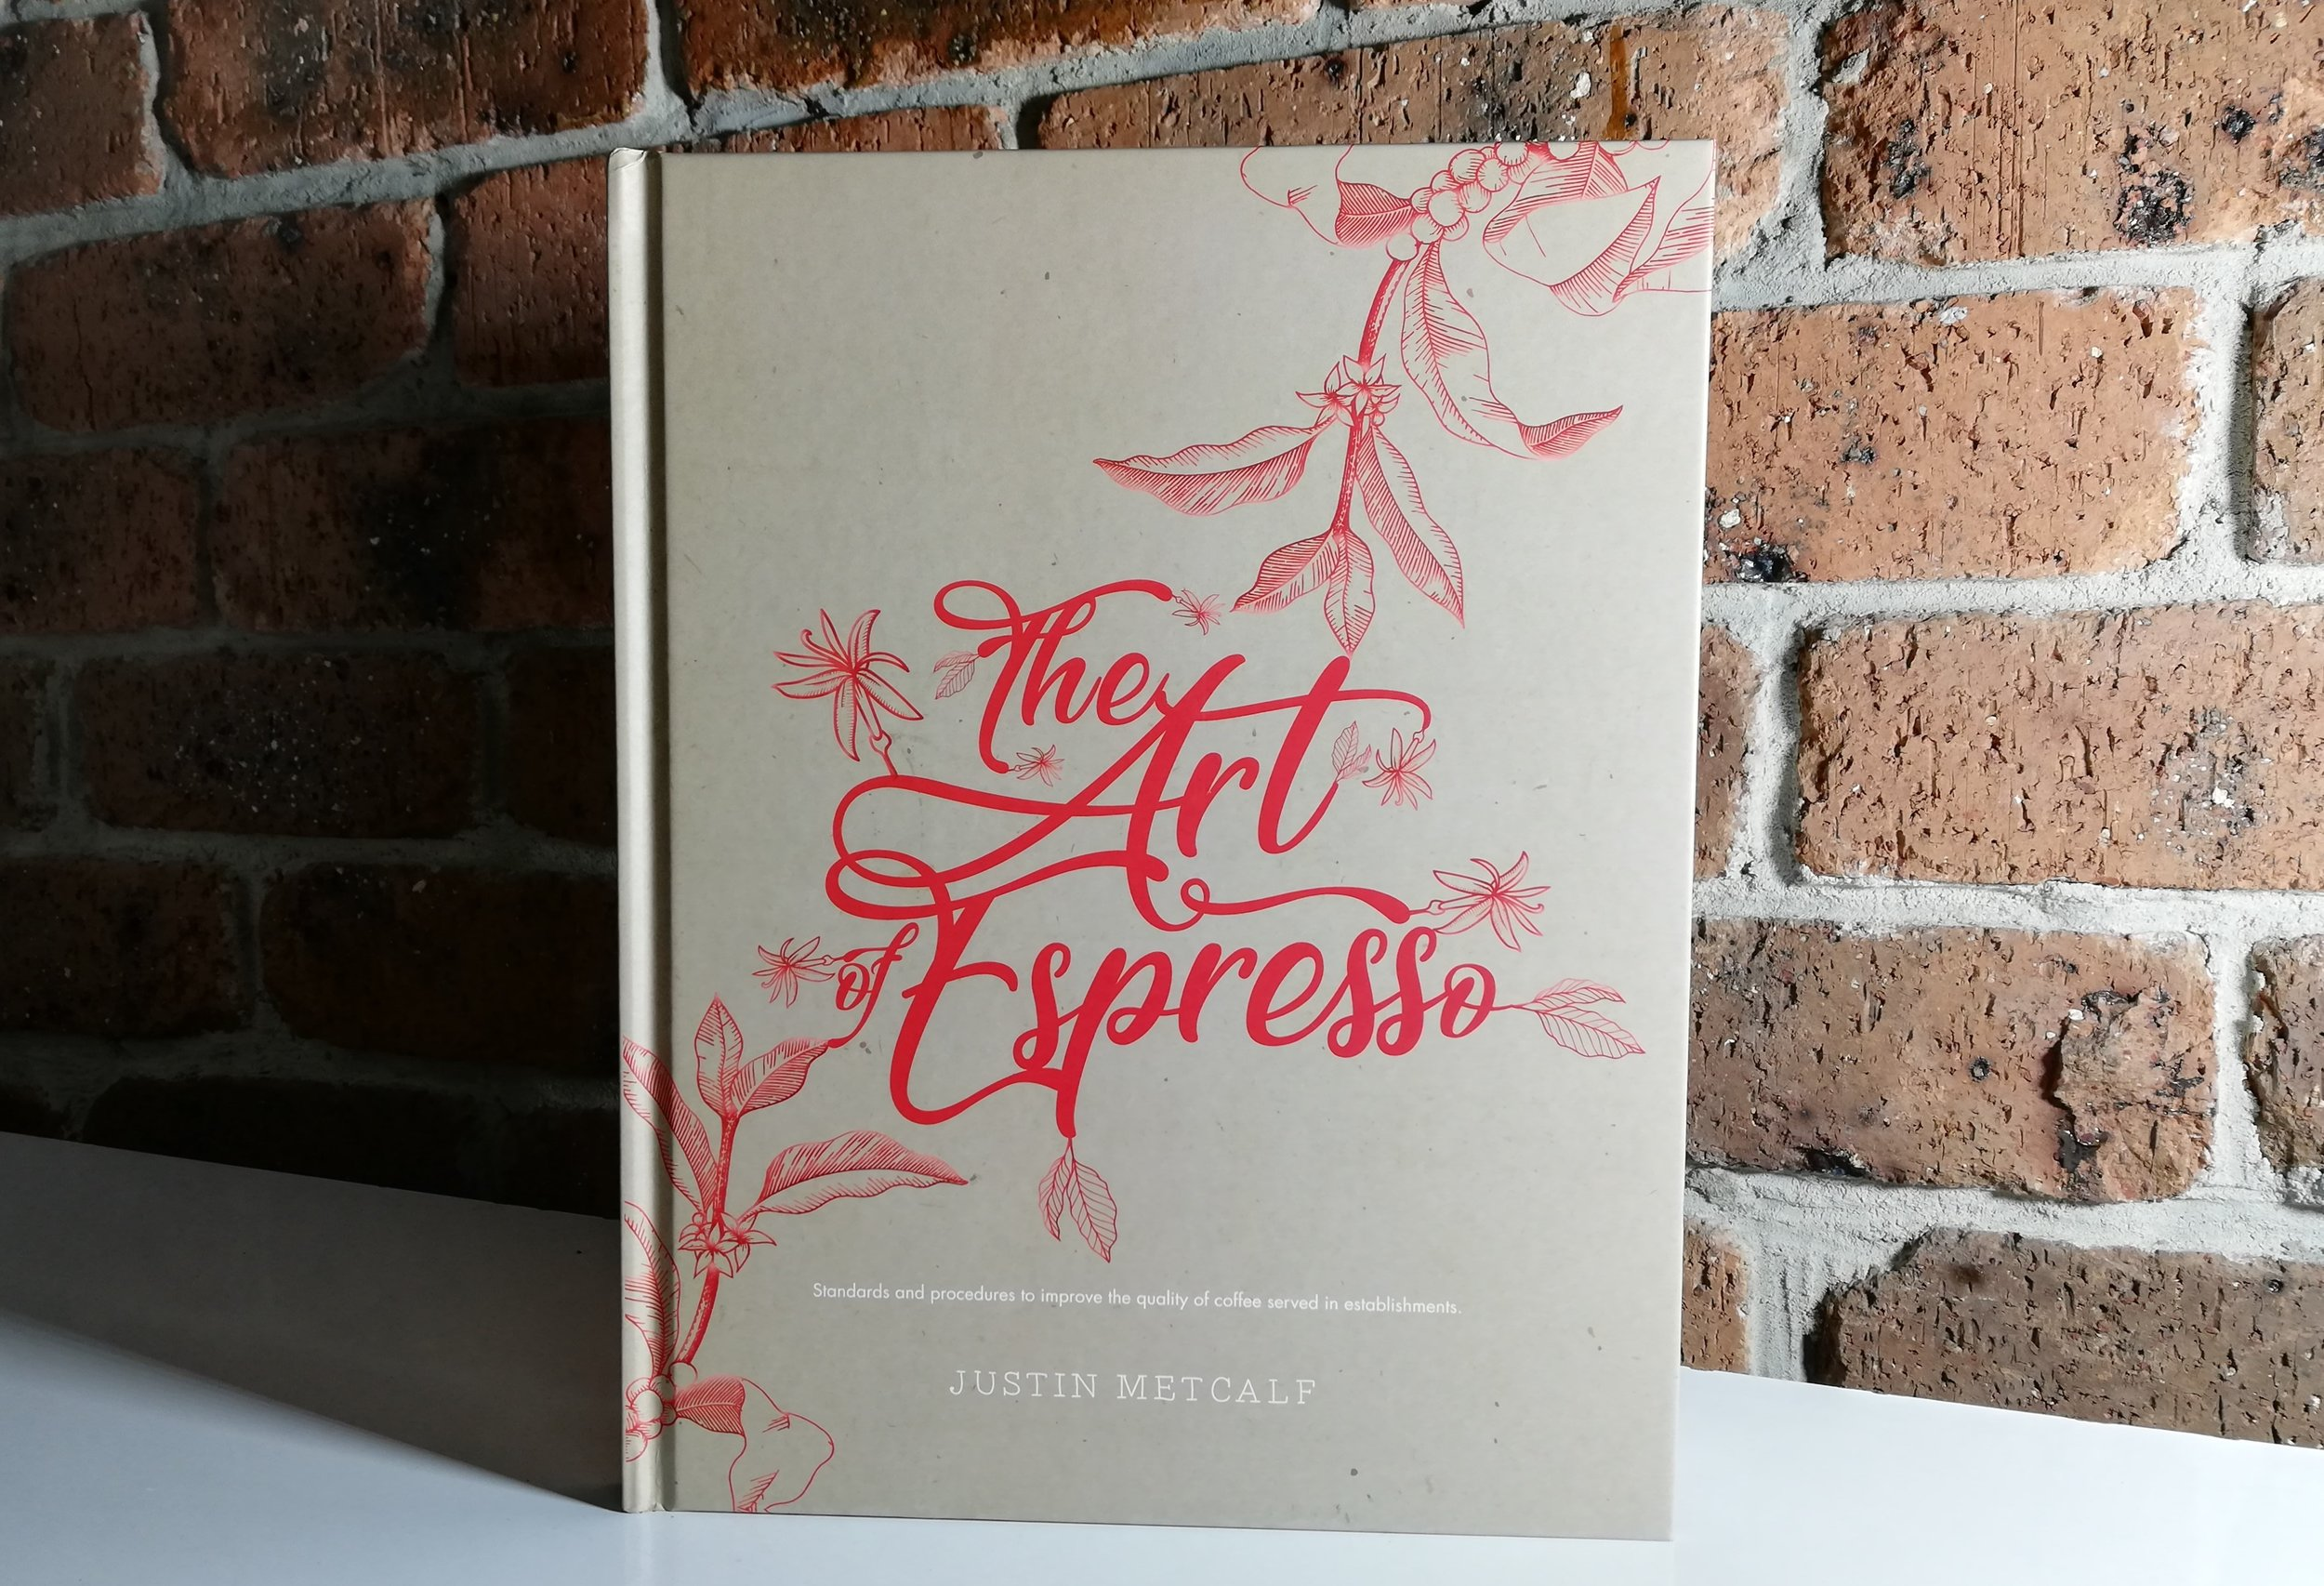 The Art of Espresso by Justin Metcalf - My book aims to establish standards and detail the best practice procedures to improve the quality of coffee served in our establishments. Shop here!